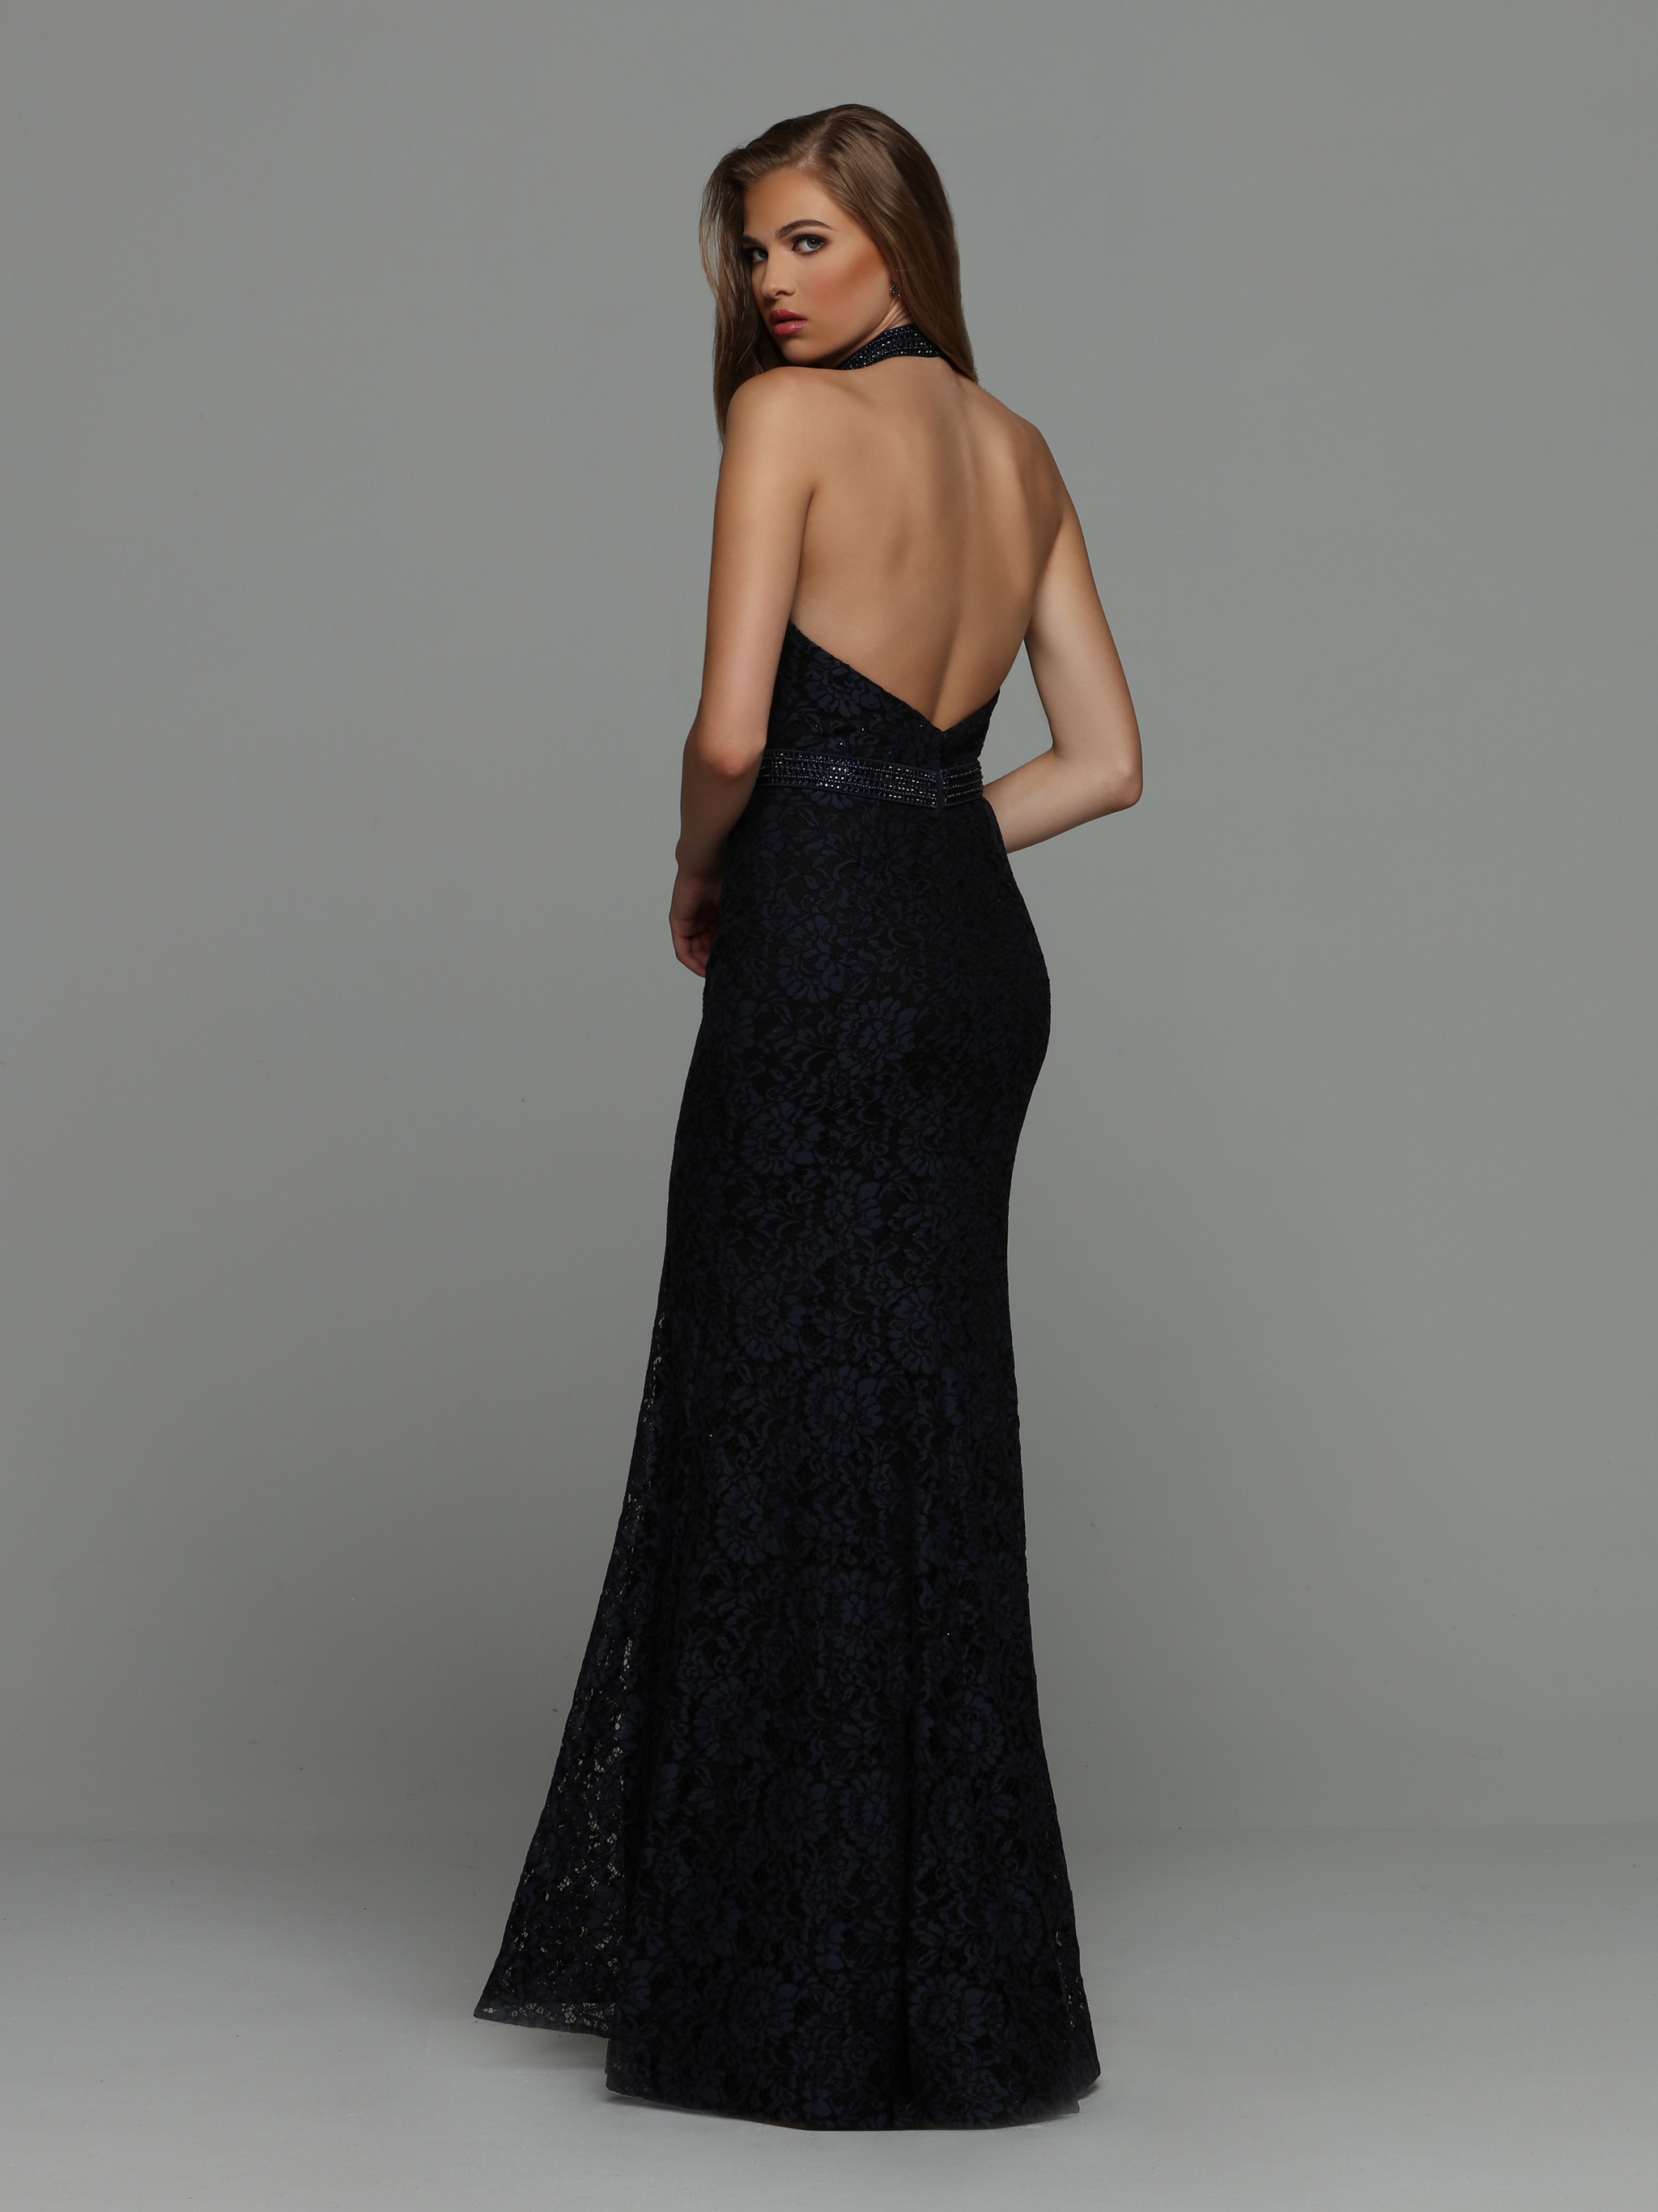 Back view of Style : 71930